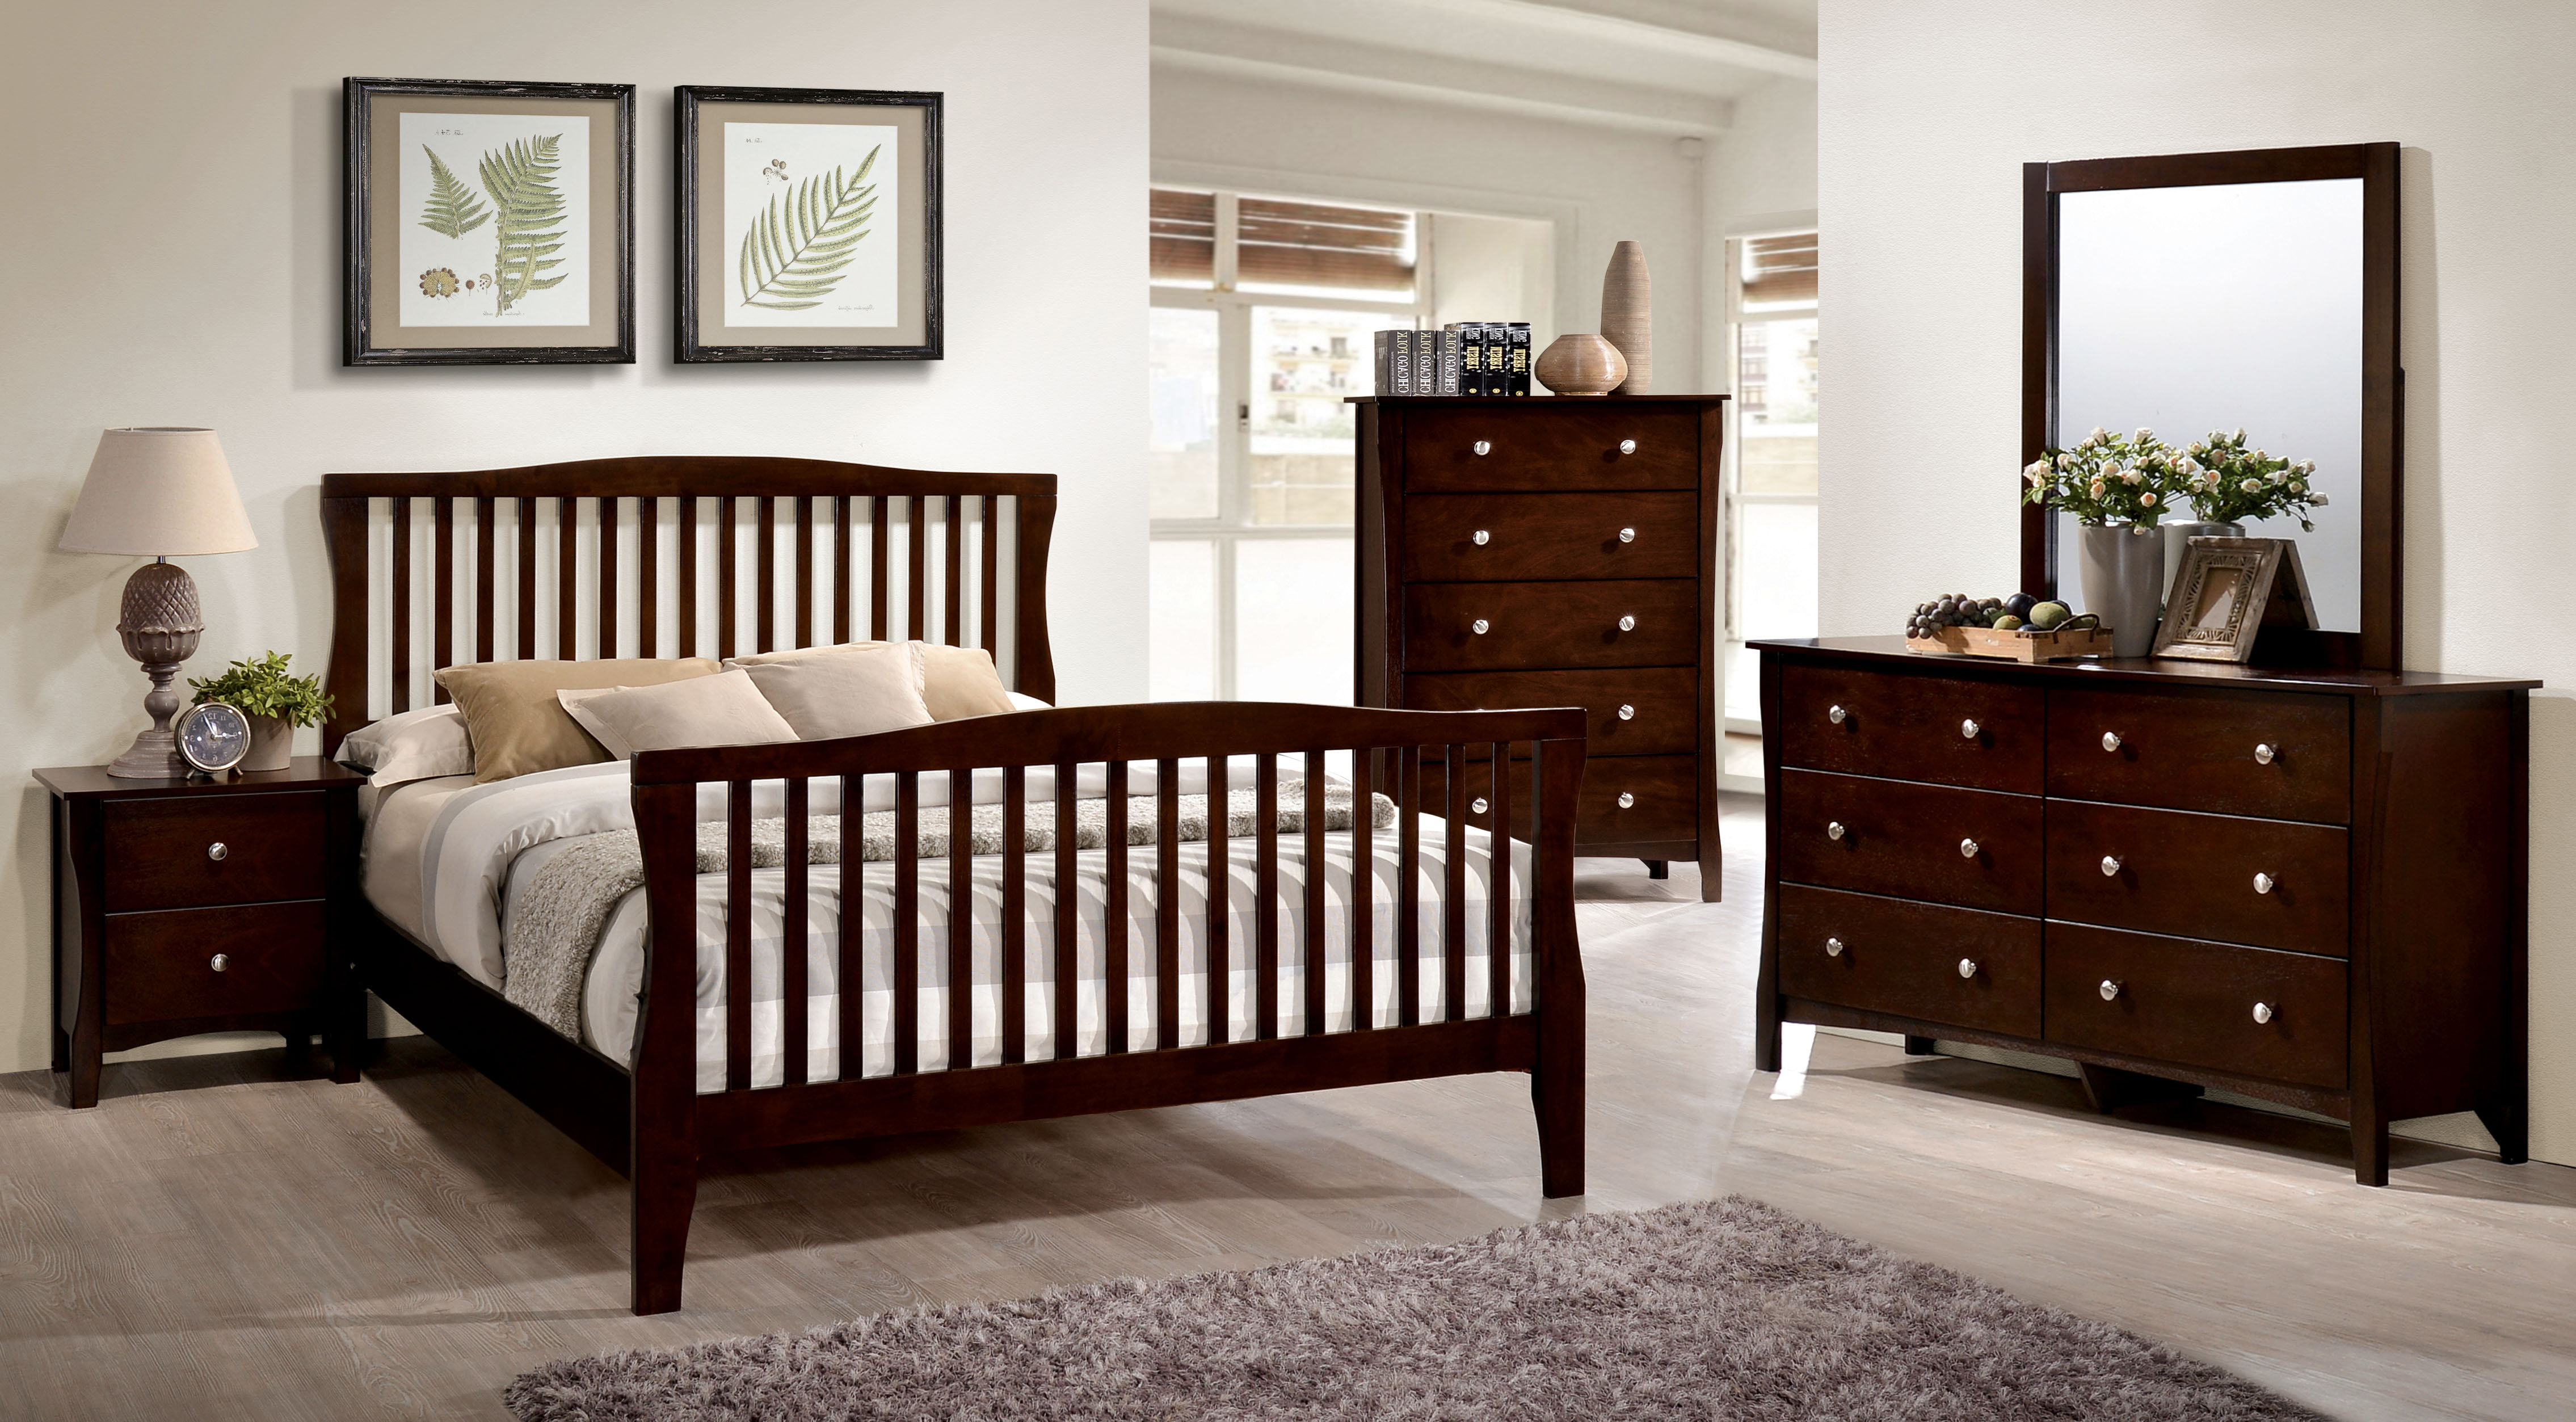 Furniture of America Areena 4-Piece Areena Brown Full Bedroom Set, Cherry by Furniture of America